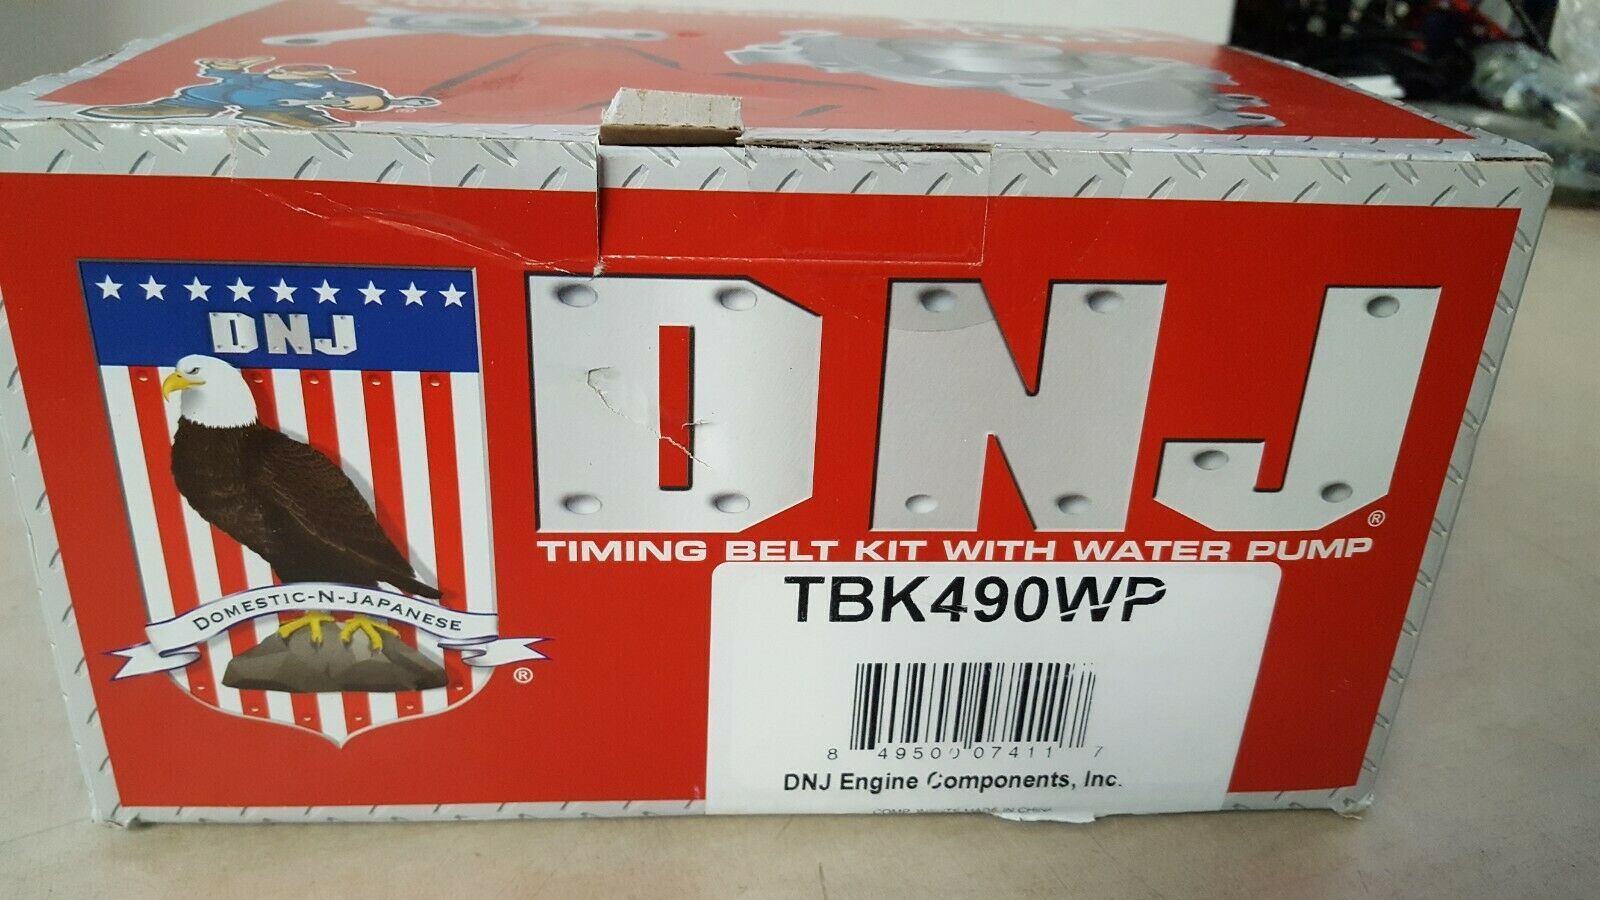 DNJ TBK490WP Timing Belt Kit With Water Pump image 2